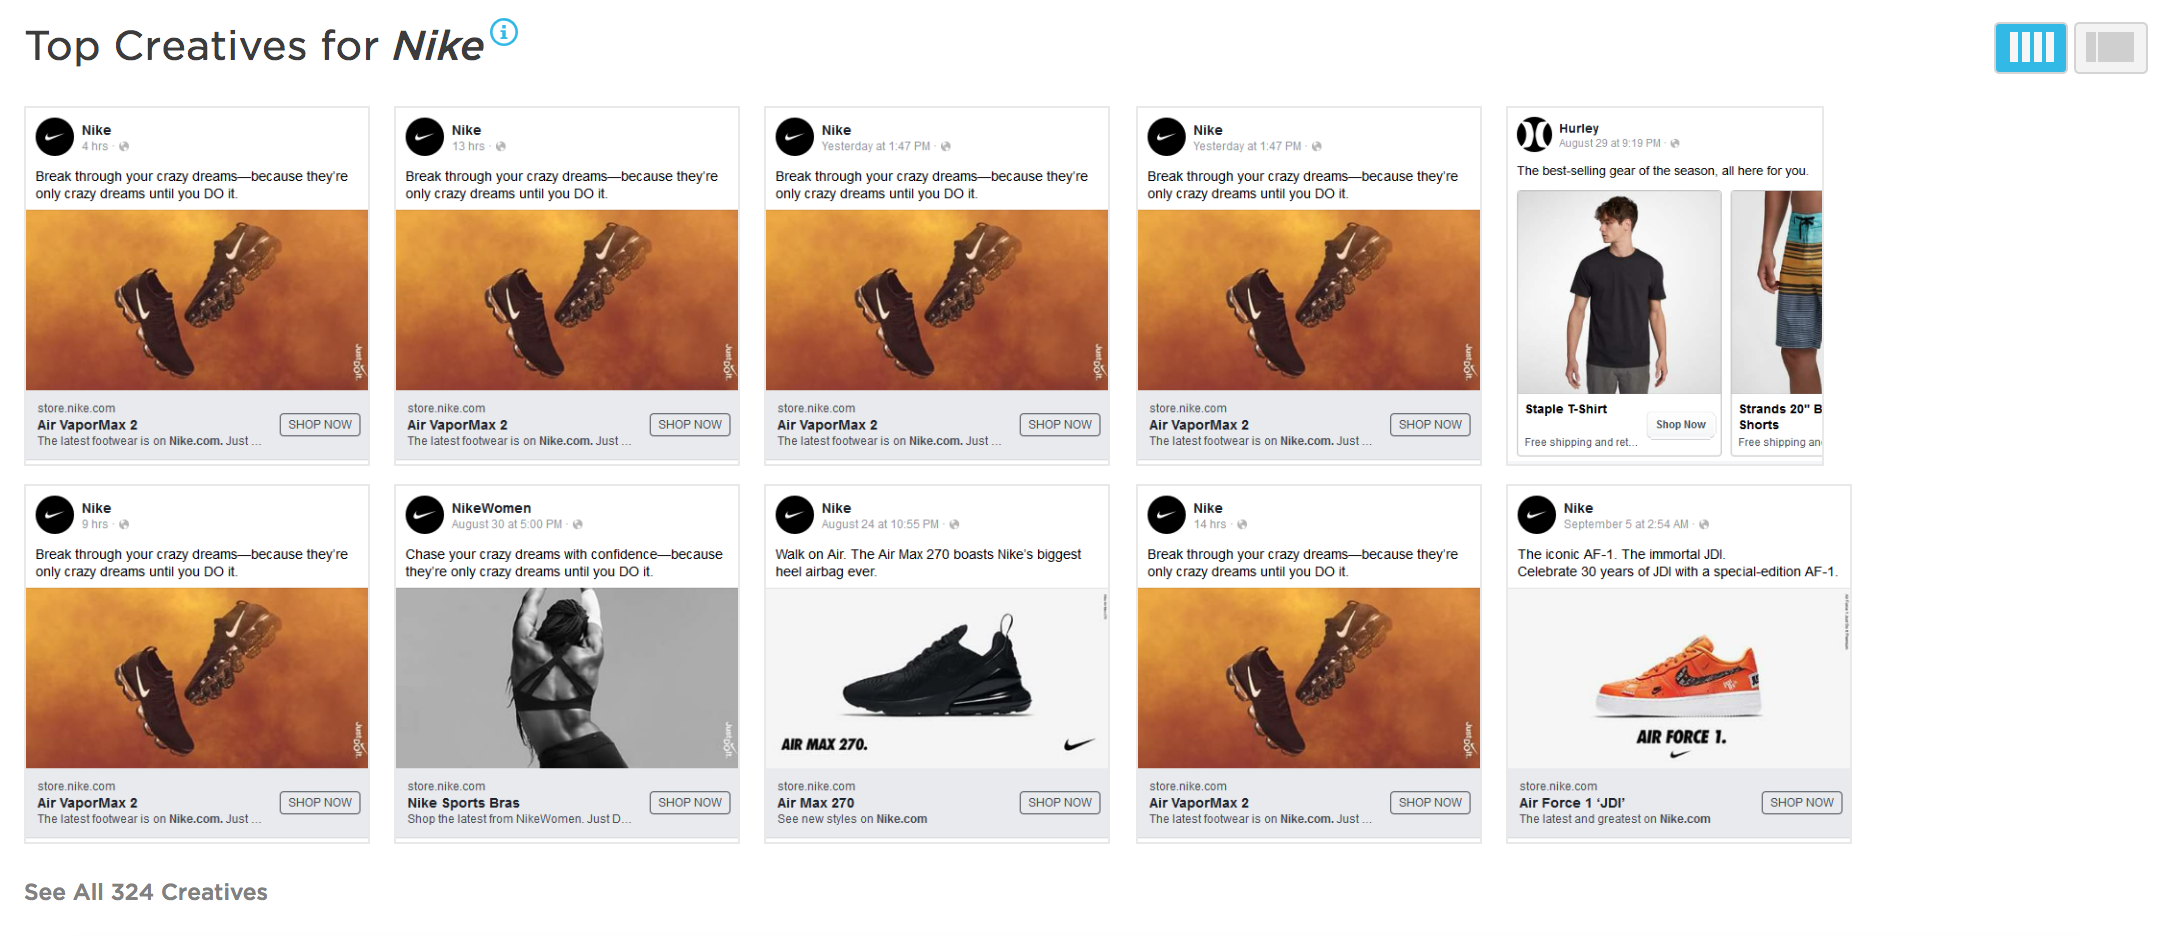 Keeping Up With Nike's Digital Strategy